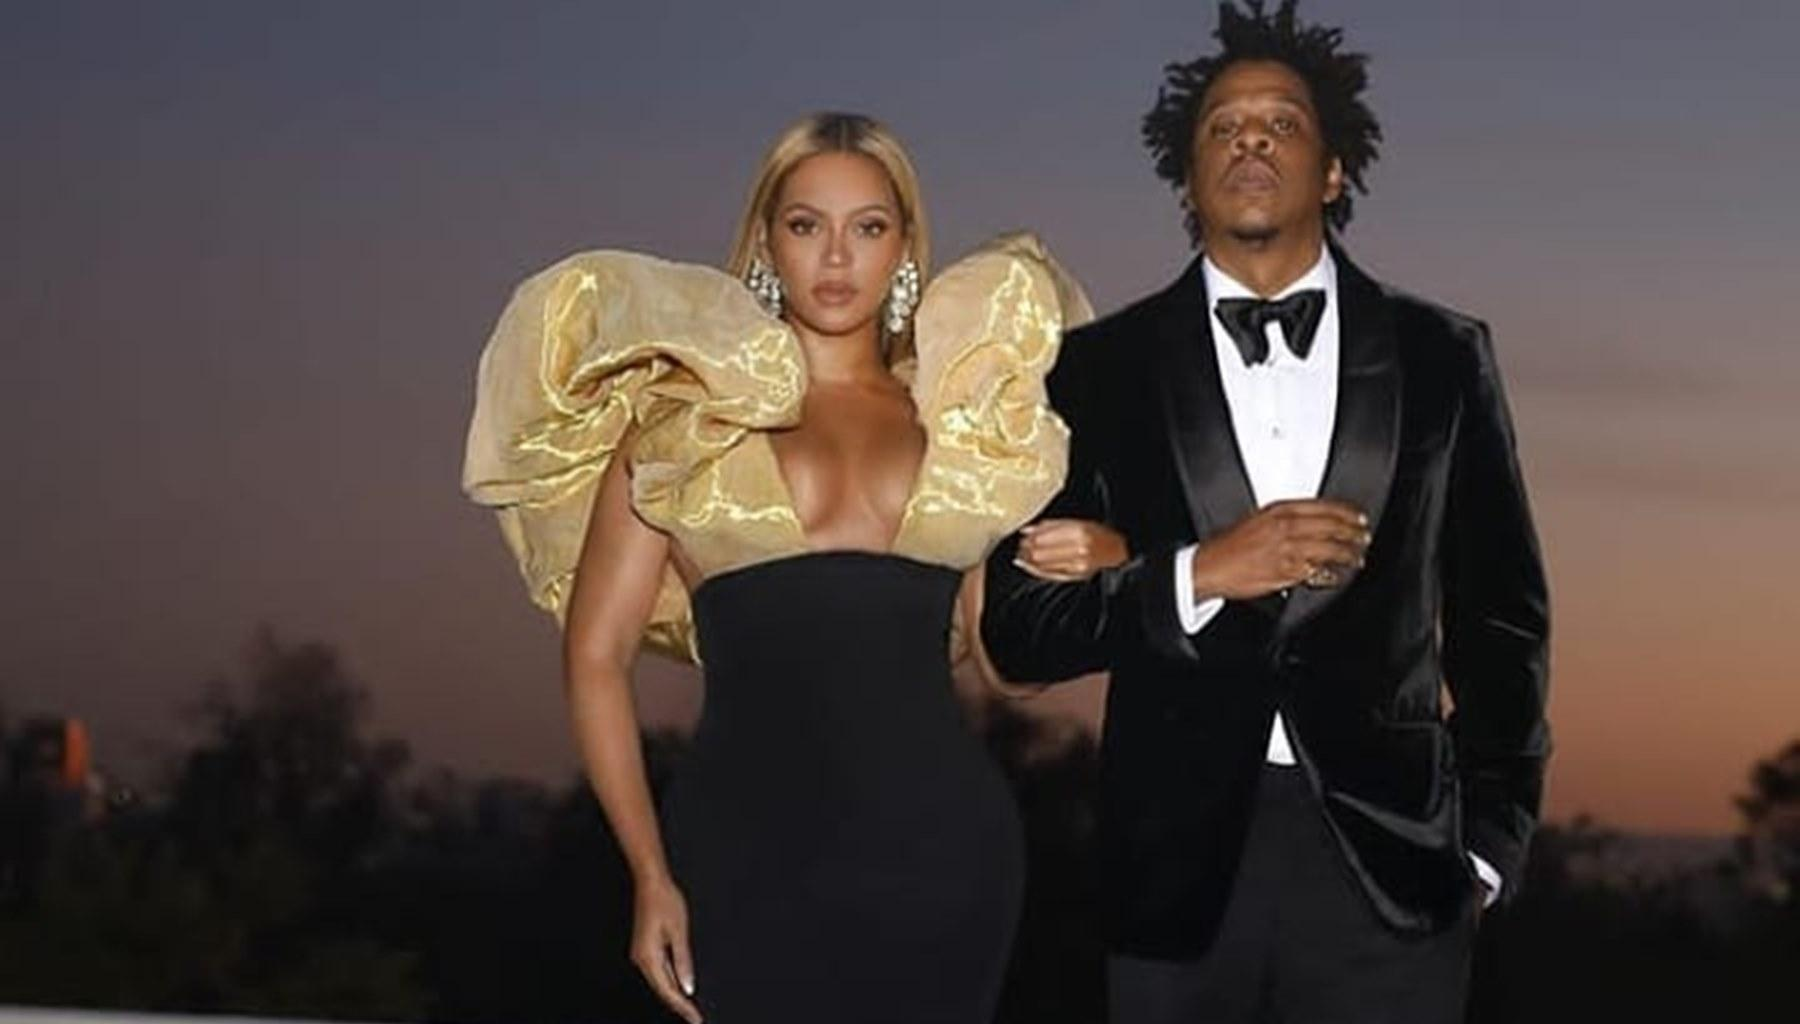 Beyoncé Wins The Night For Fans At 2020 Golden Globe Awards Thanks To Show-Stopping Dress Photos While Some Moves With Husband Jay-Z Left A Few People Confused